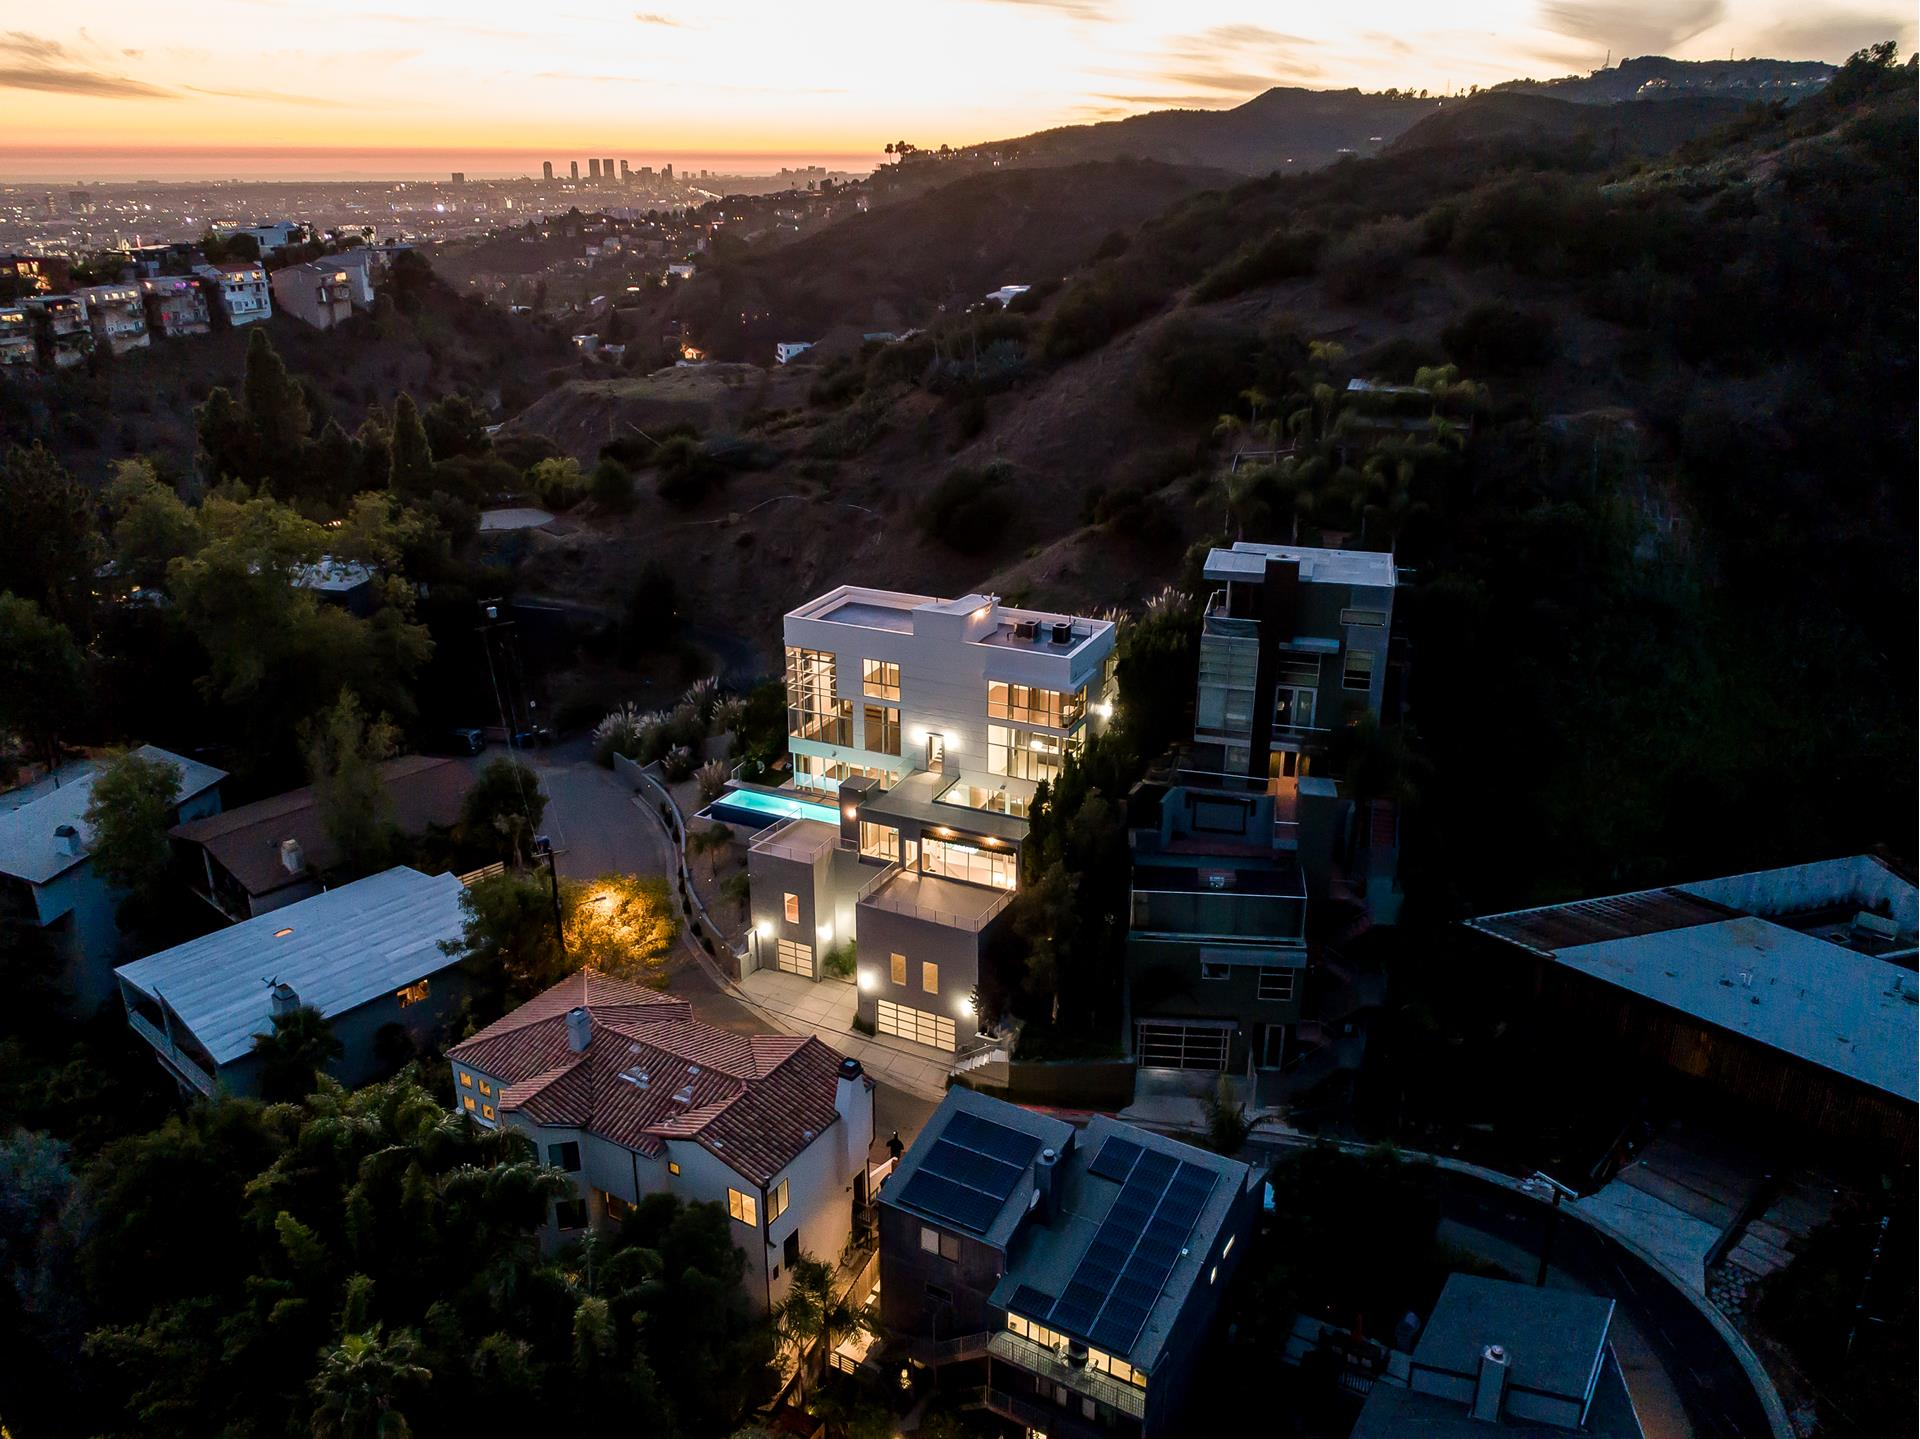 2746 RINCONIA Drive - Hollywood Hills East, California